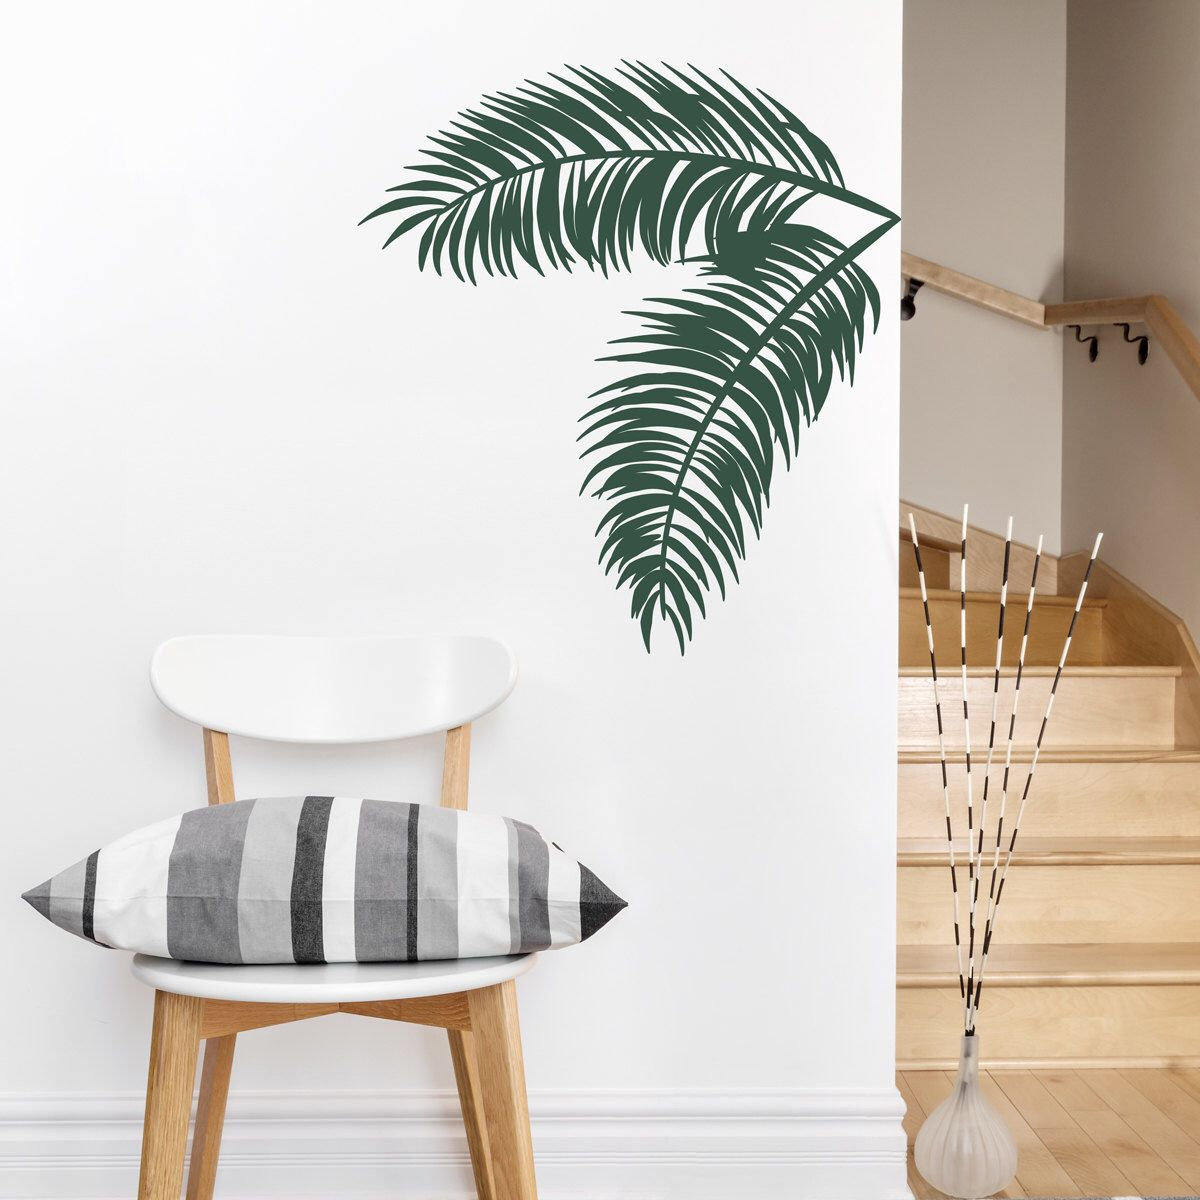 Palm Leaves Wall Decal  Tropical Wall Art, Palm Tree Decal, Hawaiian Decal,  Palm Tree Wall Art, Nature Wall Decal, Palm Leaf Art, Leaf Decal